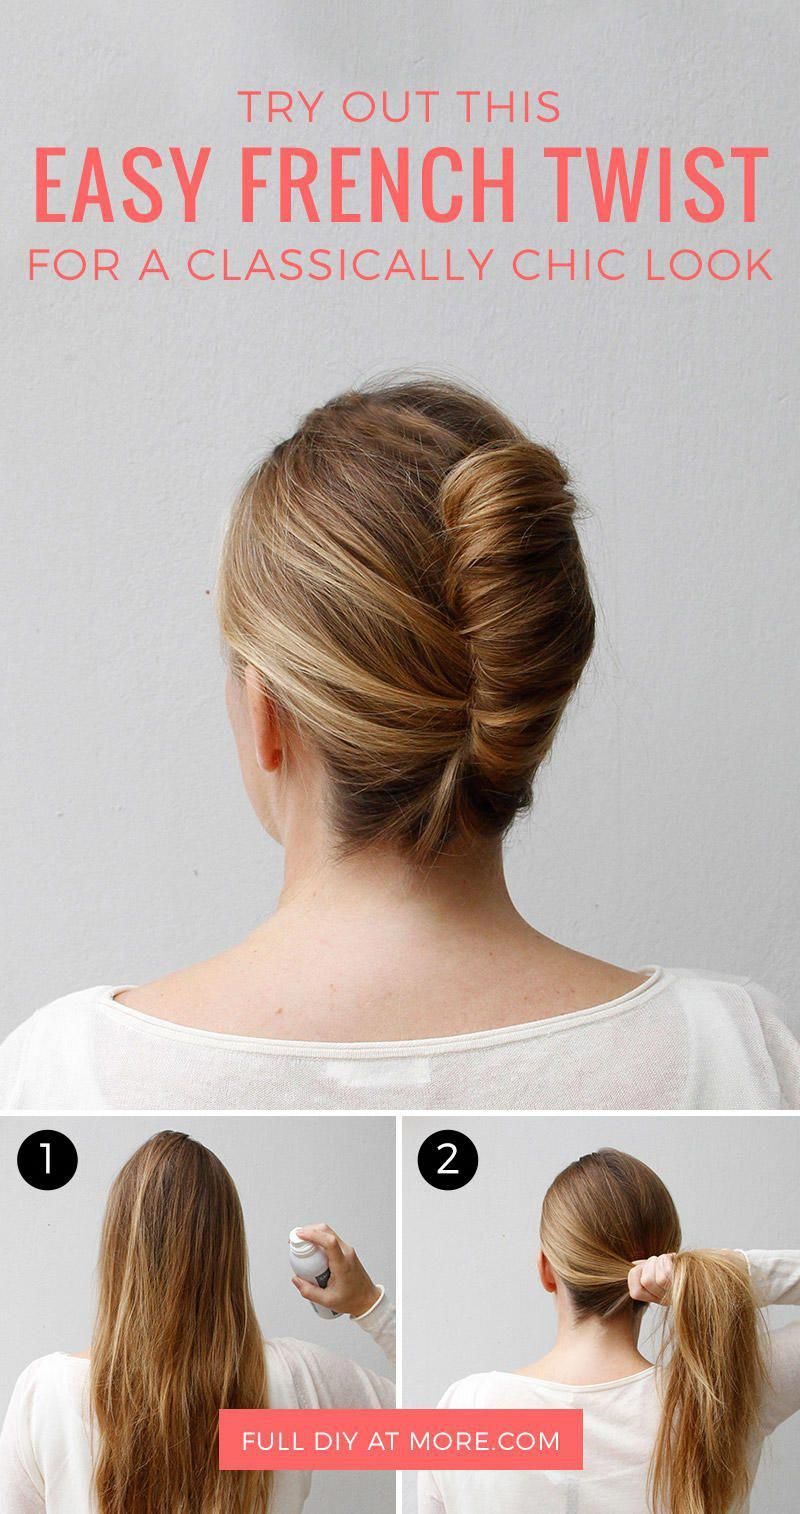 Celebrity Short Hairstyles | Easy To Do Upstyles | Cute Simple Updos 20190126 | French twist ...